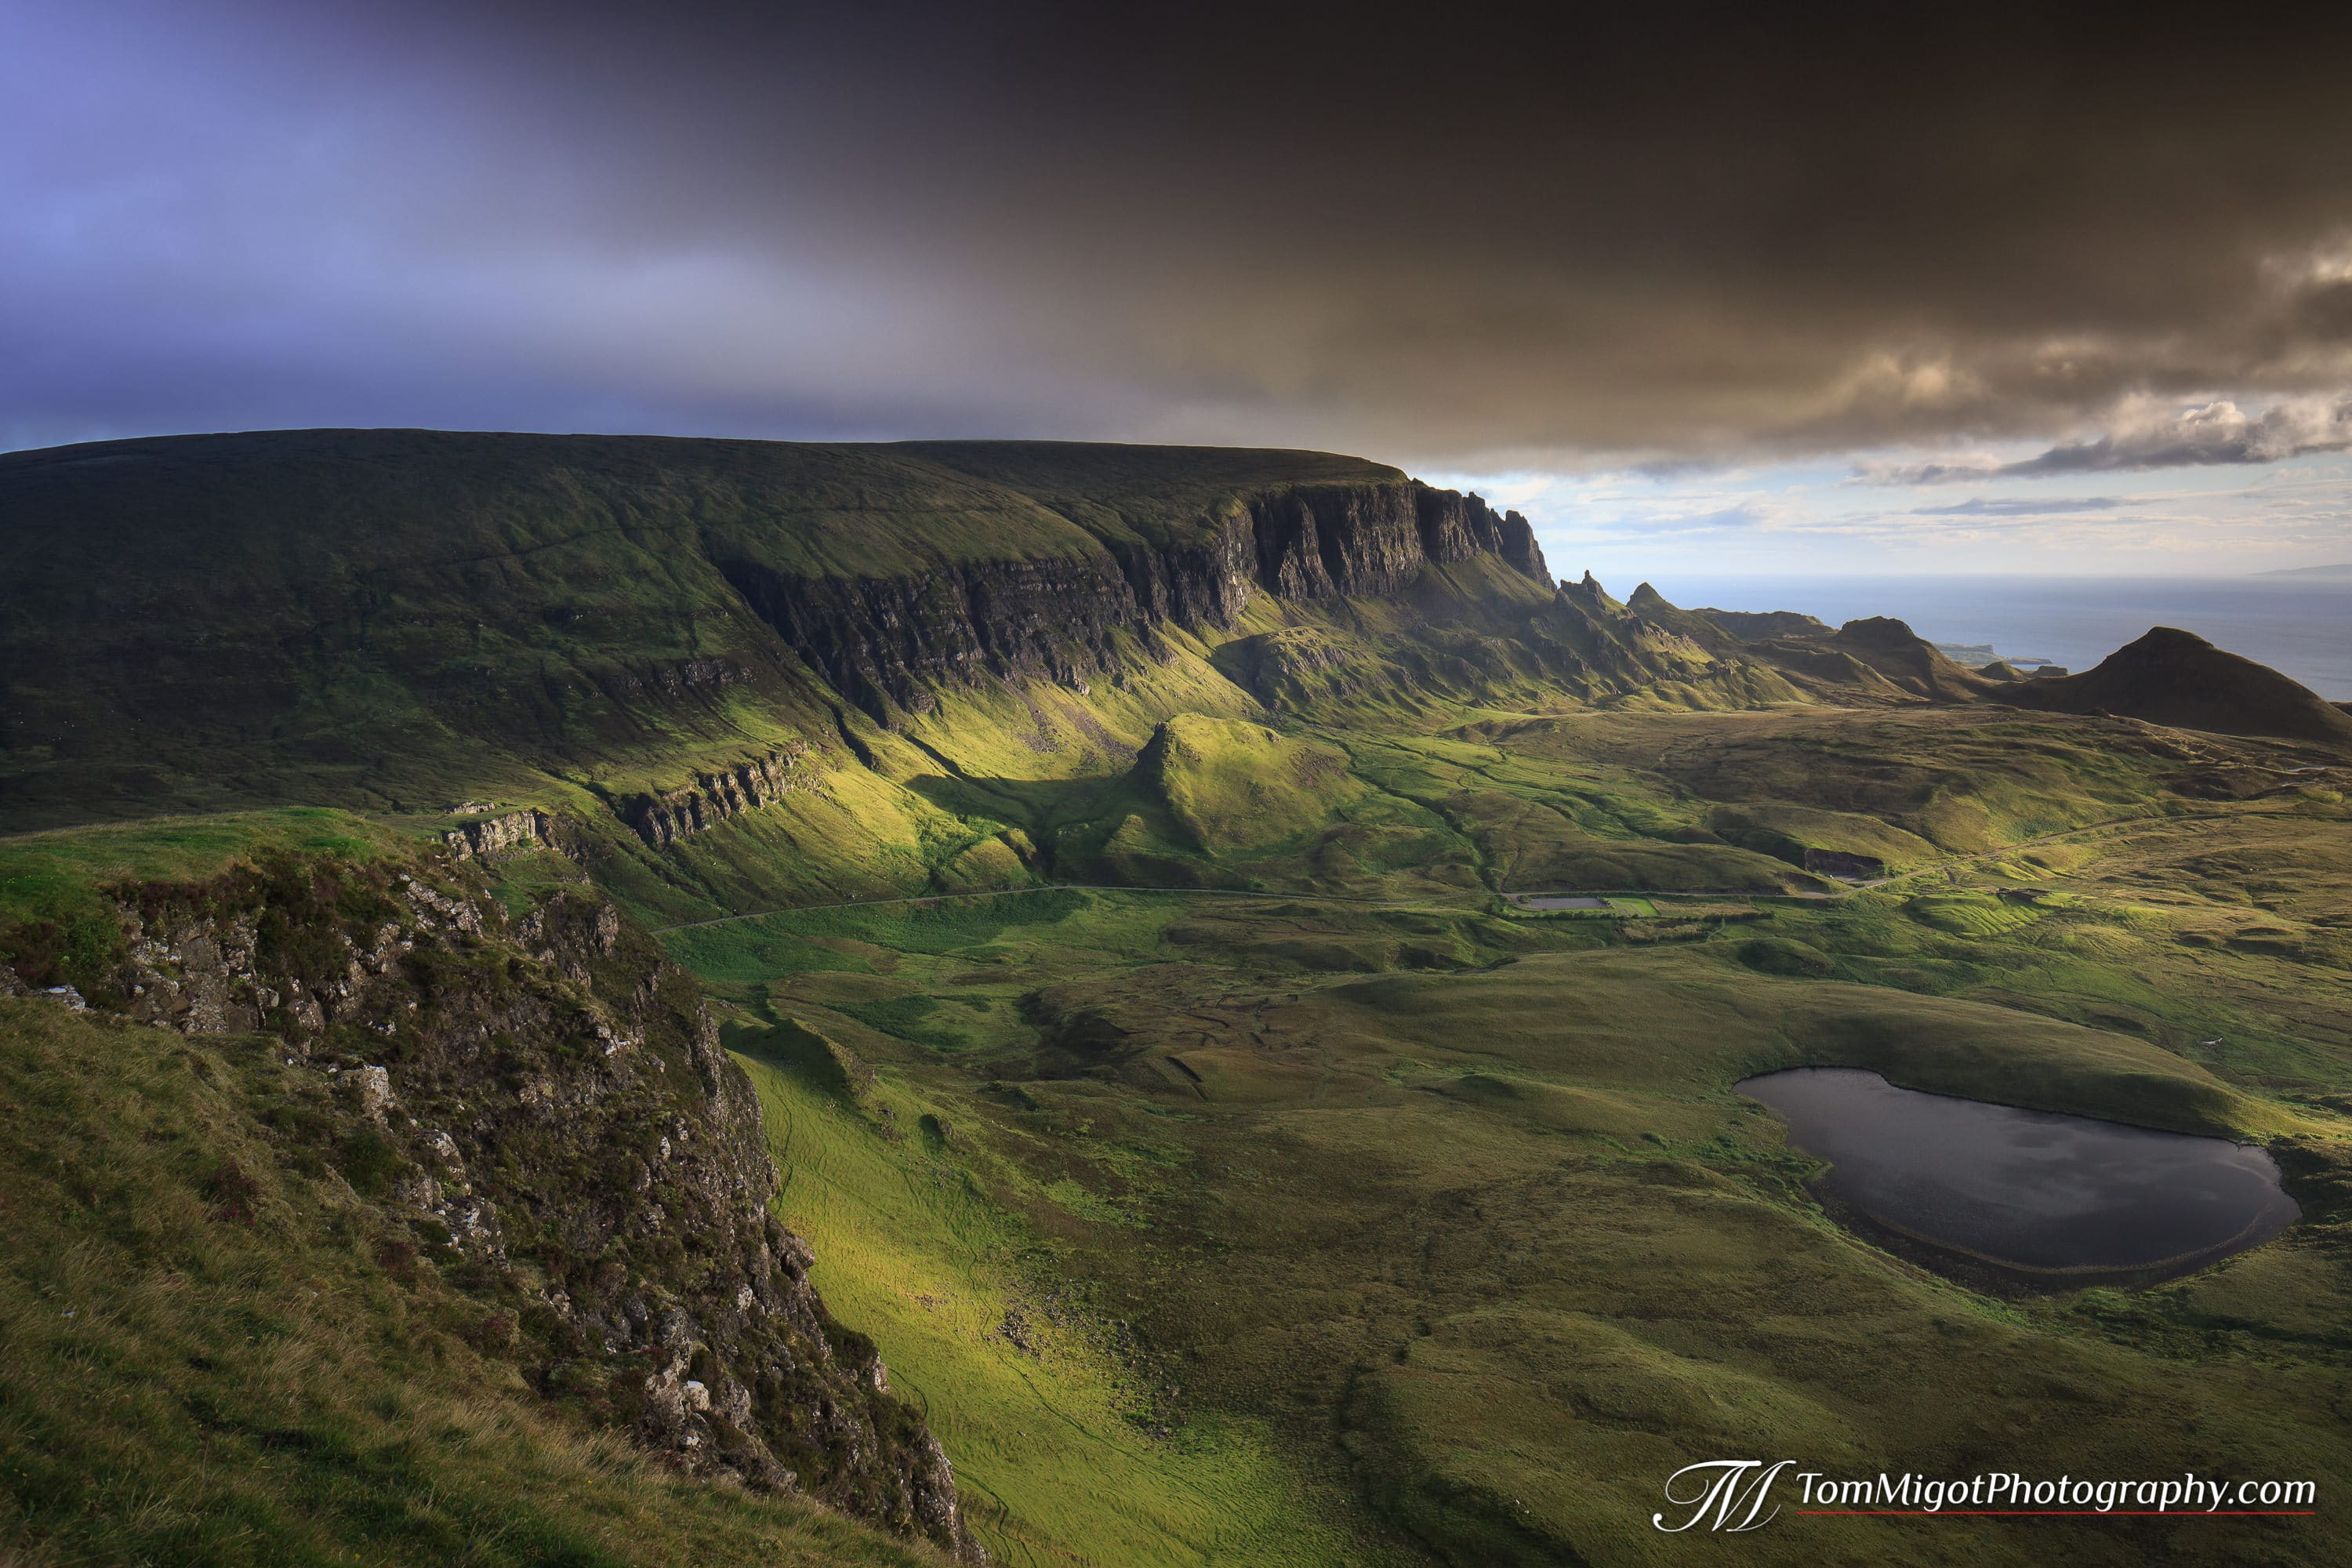 sunrise on the quiraing on the isle of skye in scotland